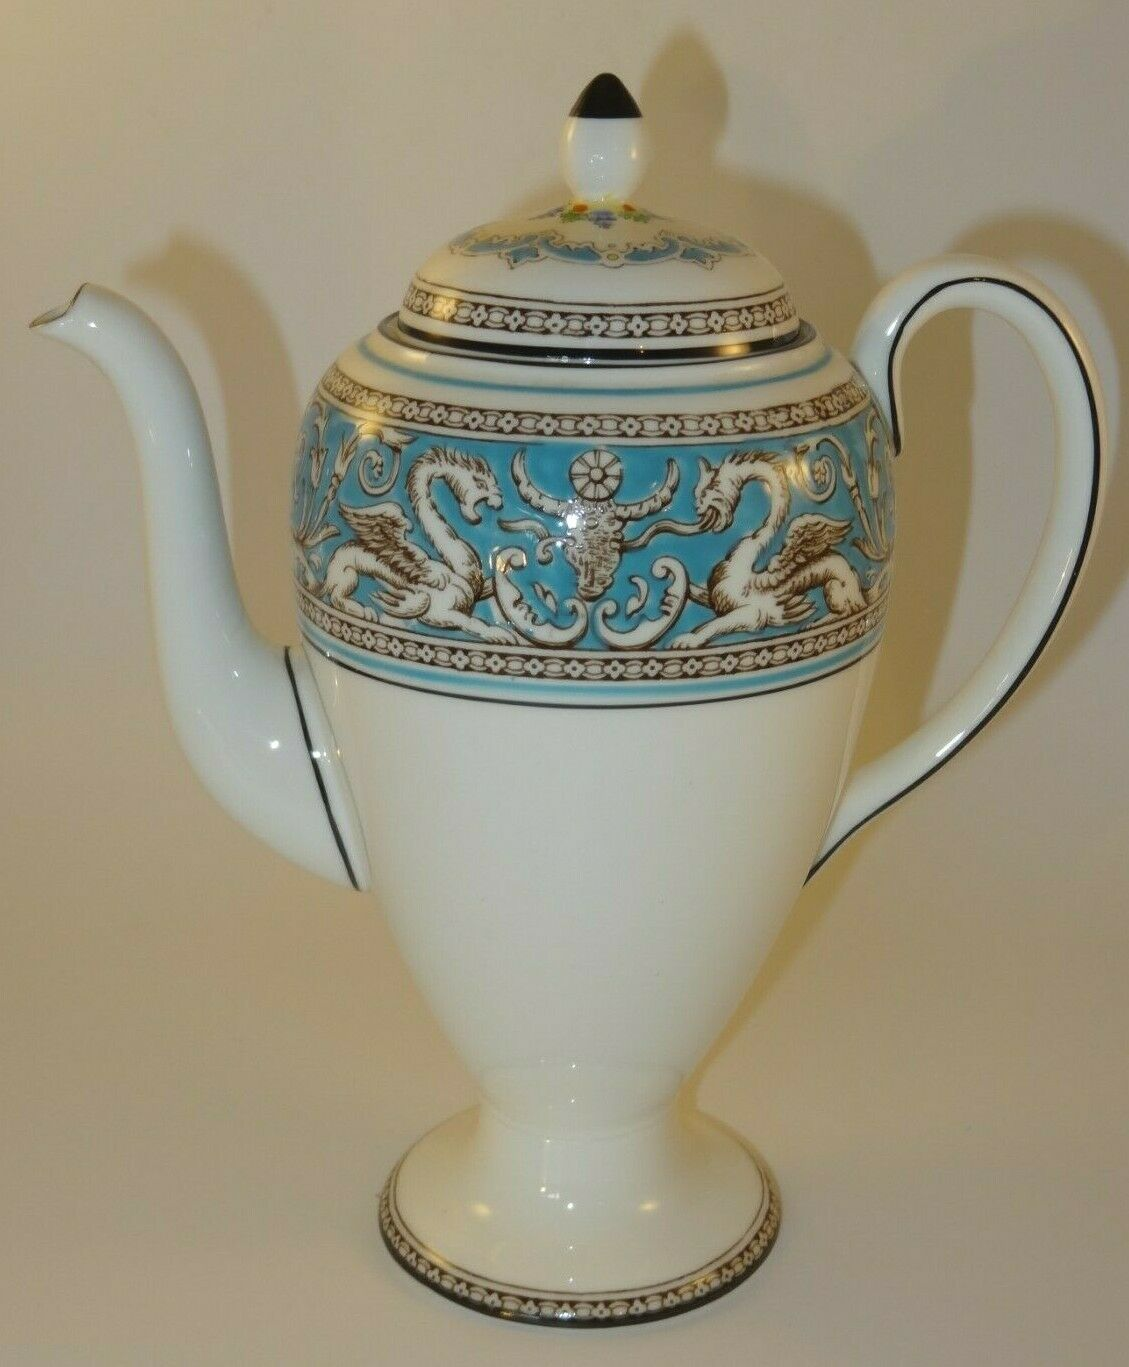 Image 1 - Wedgwood Florentine W2714 Turquoise Coffee Pot 1960s Excellent